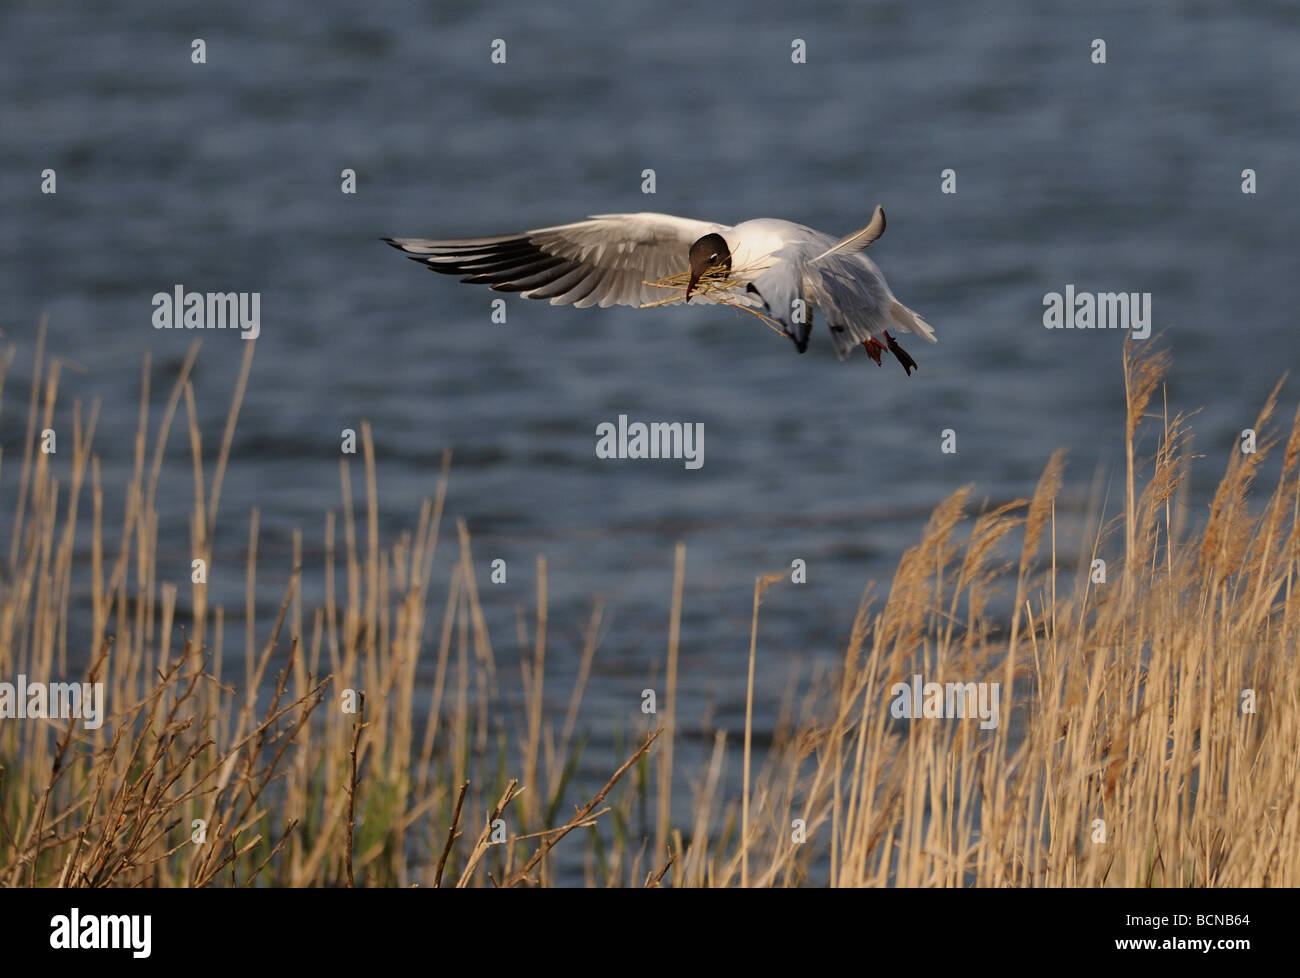 A Black-headed Gull (Larus ridibundus) in breeding plumage comes into land at its nest with a beak full of sticks. Stock Photo